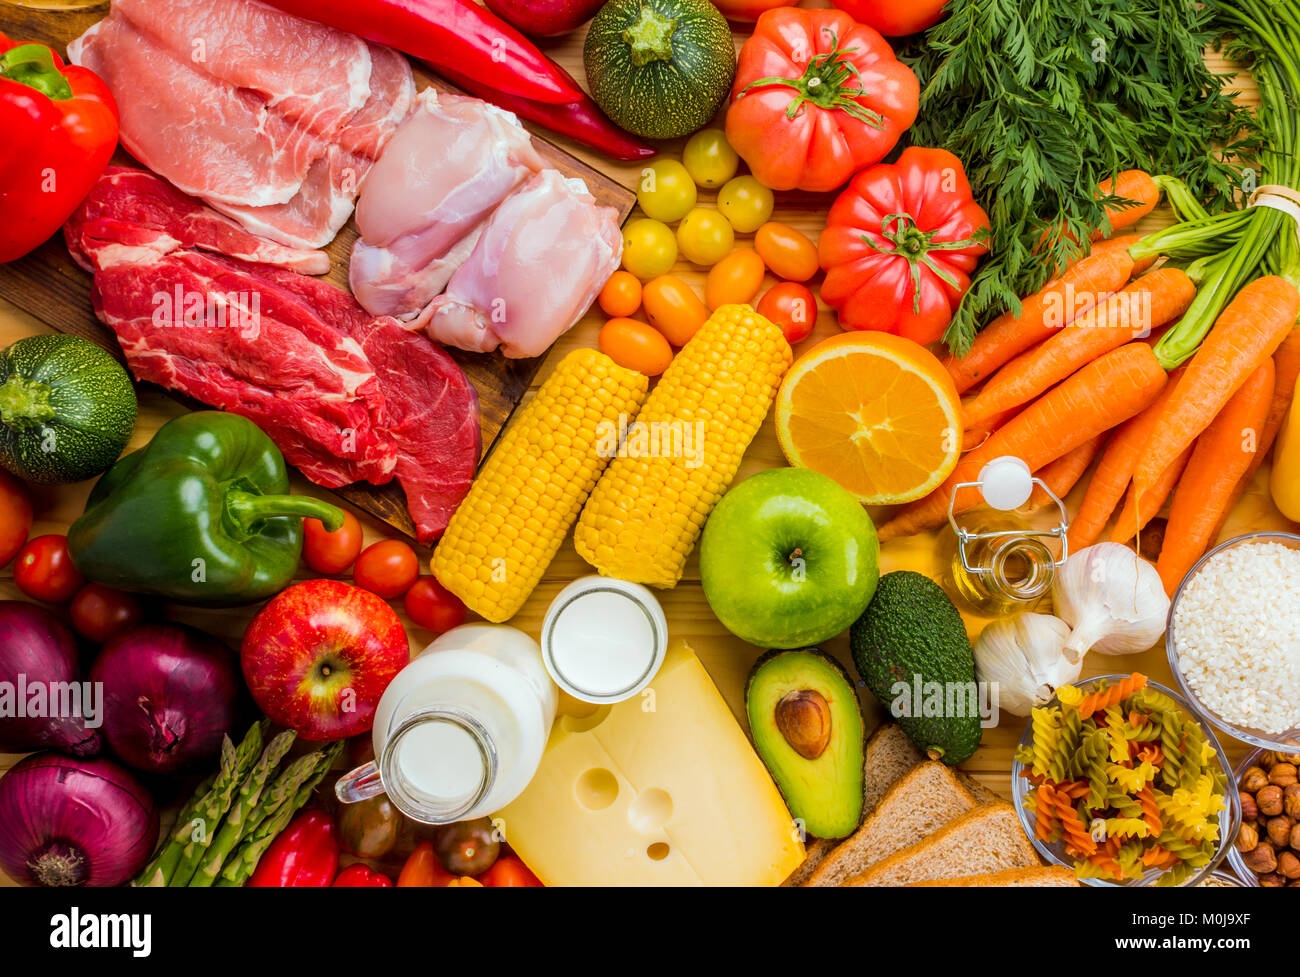 Different types of food from the food pyramid seen from above. Stock Photo